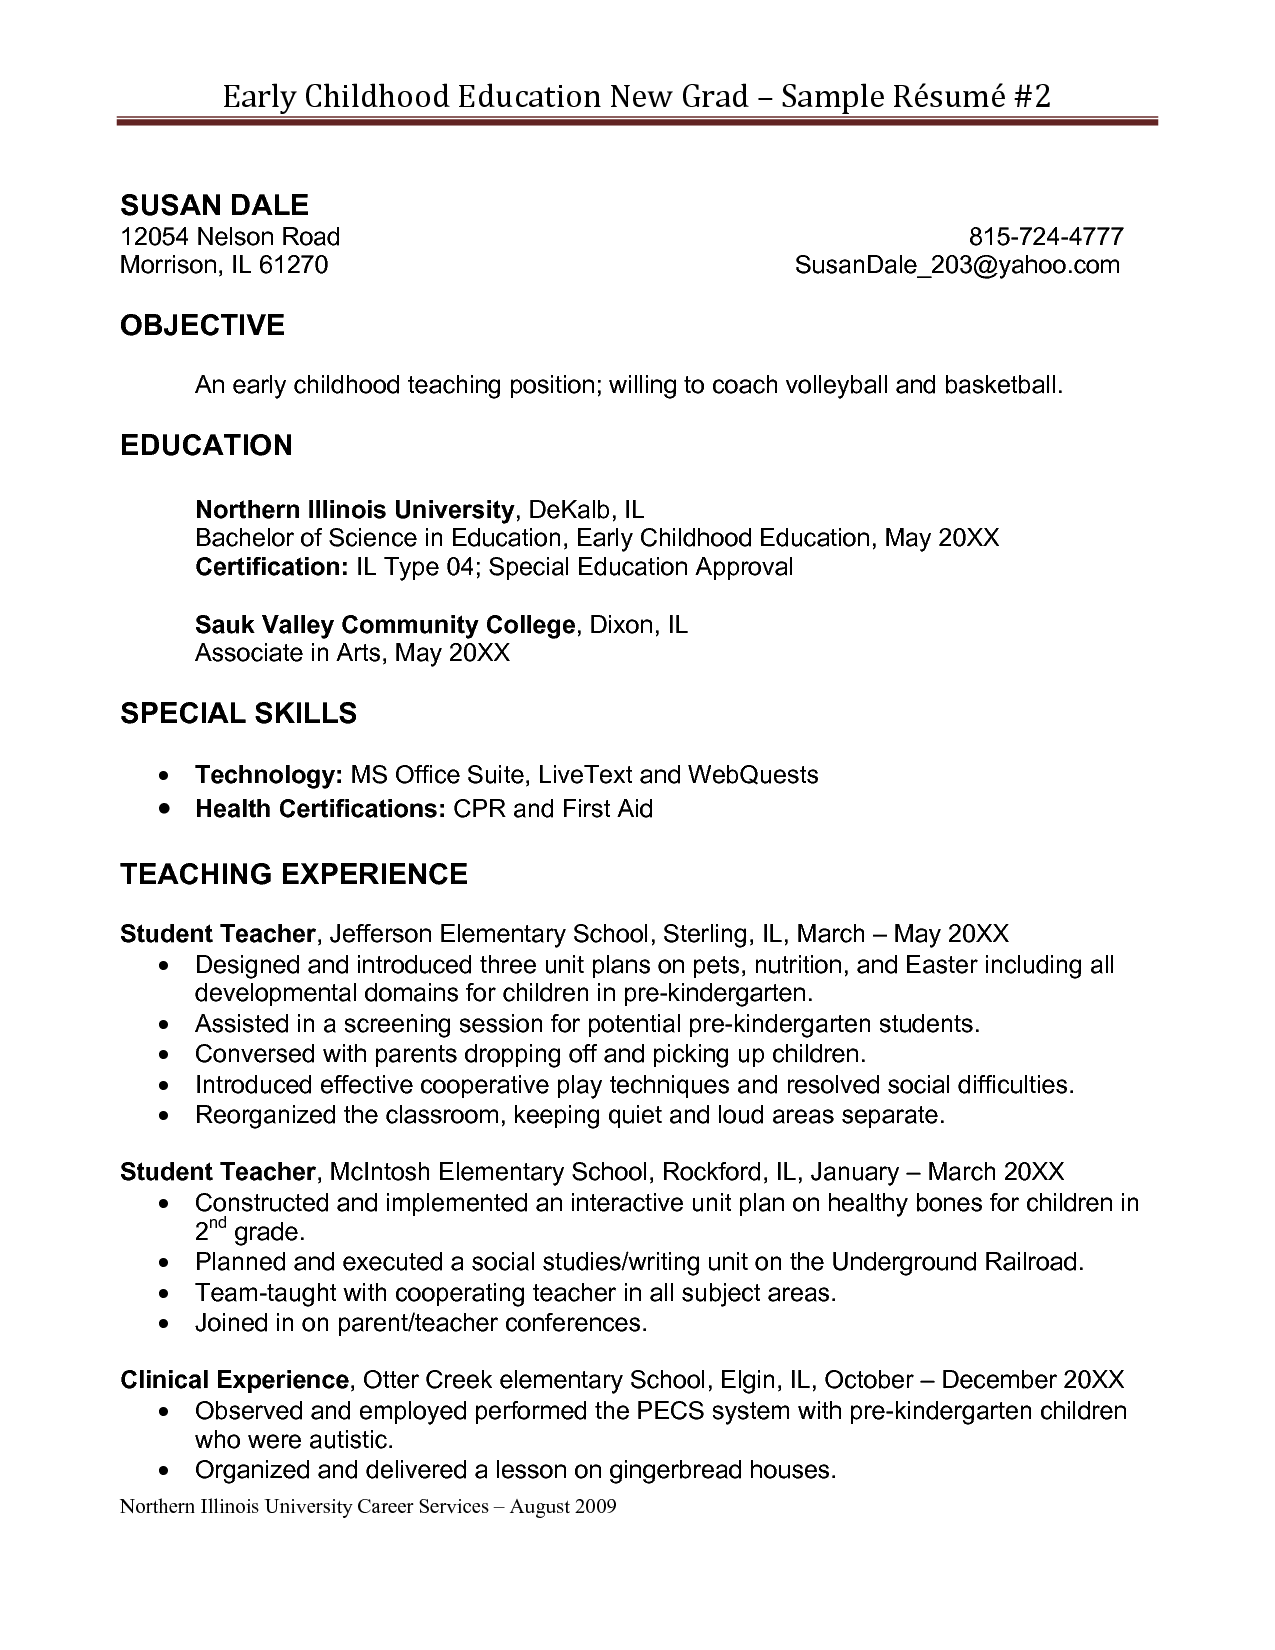 Early Childhood Education Resume Objective  Shebs